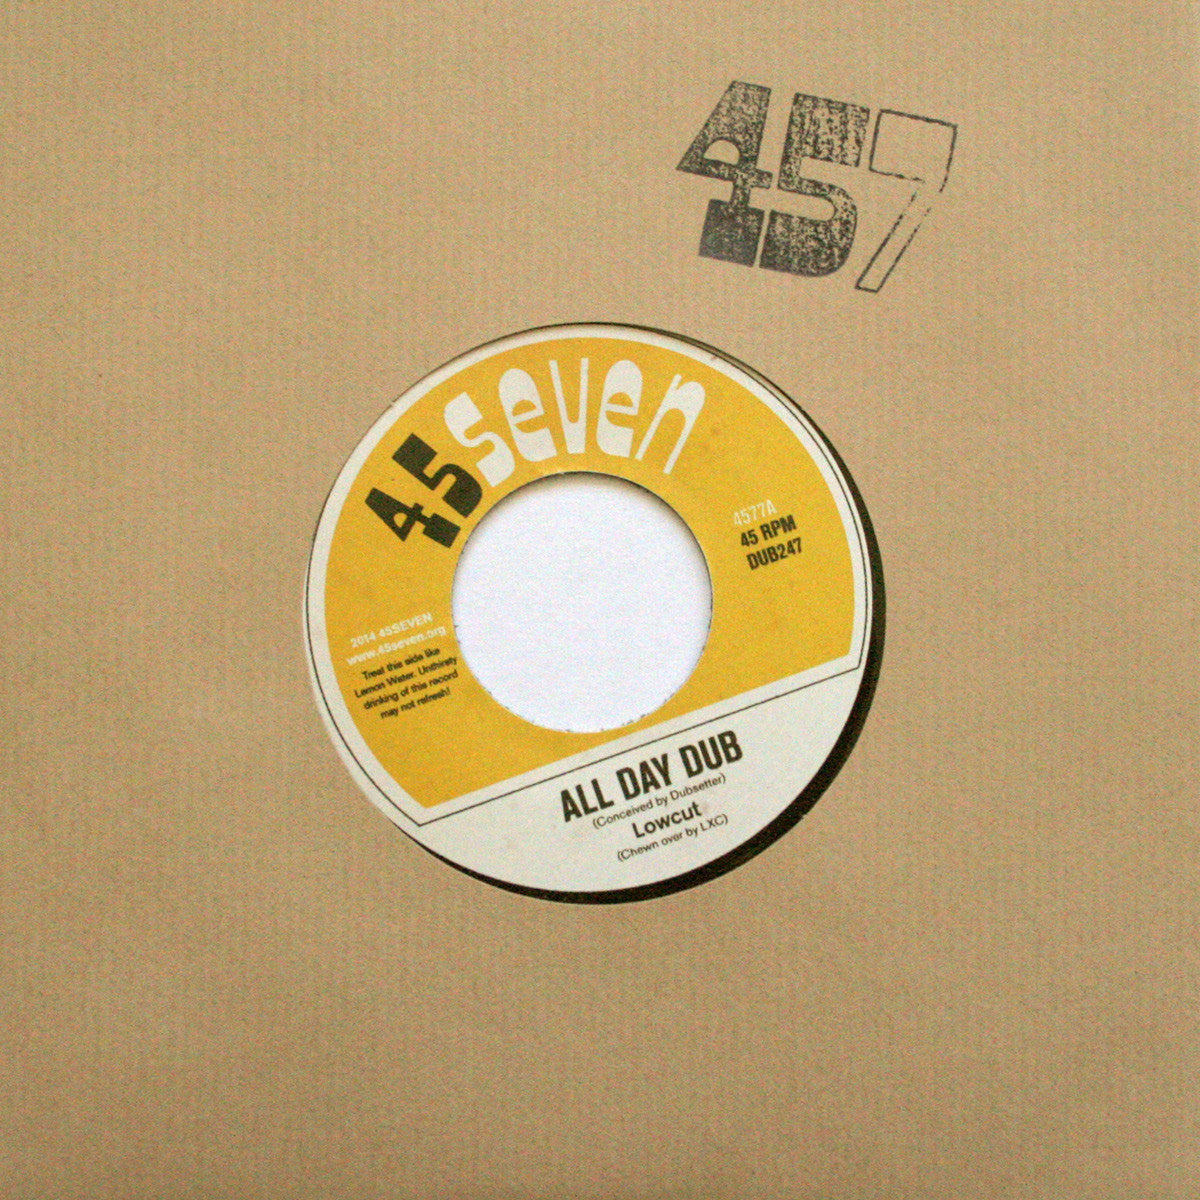 Lowcut - All Day Dub / 3Four - Unearthed Sounds